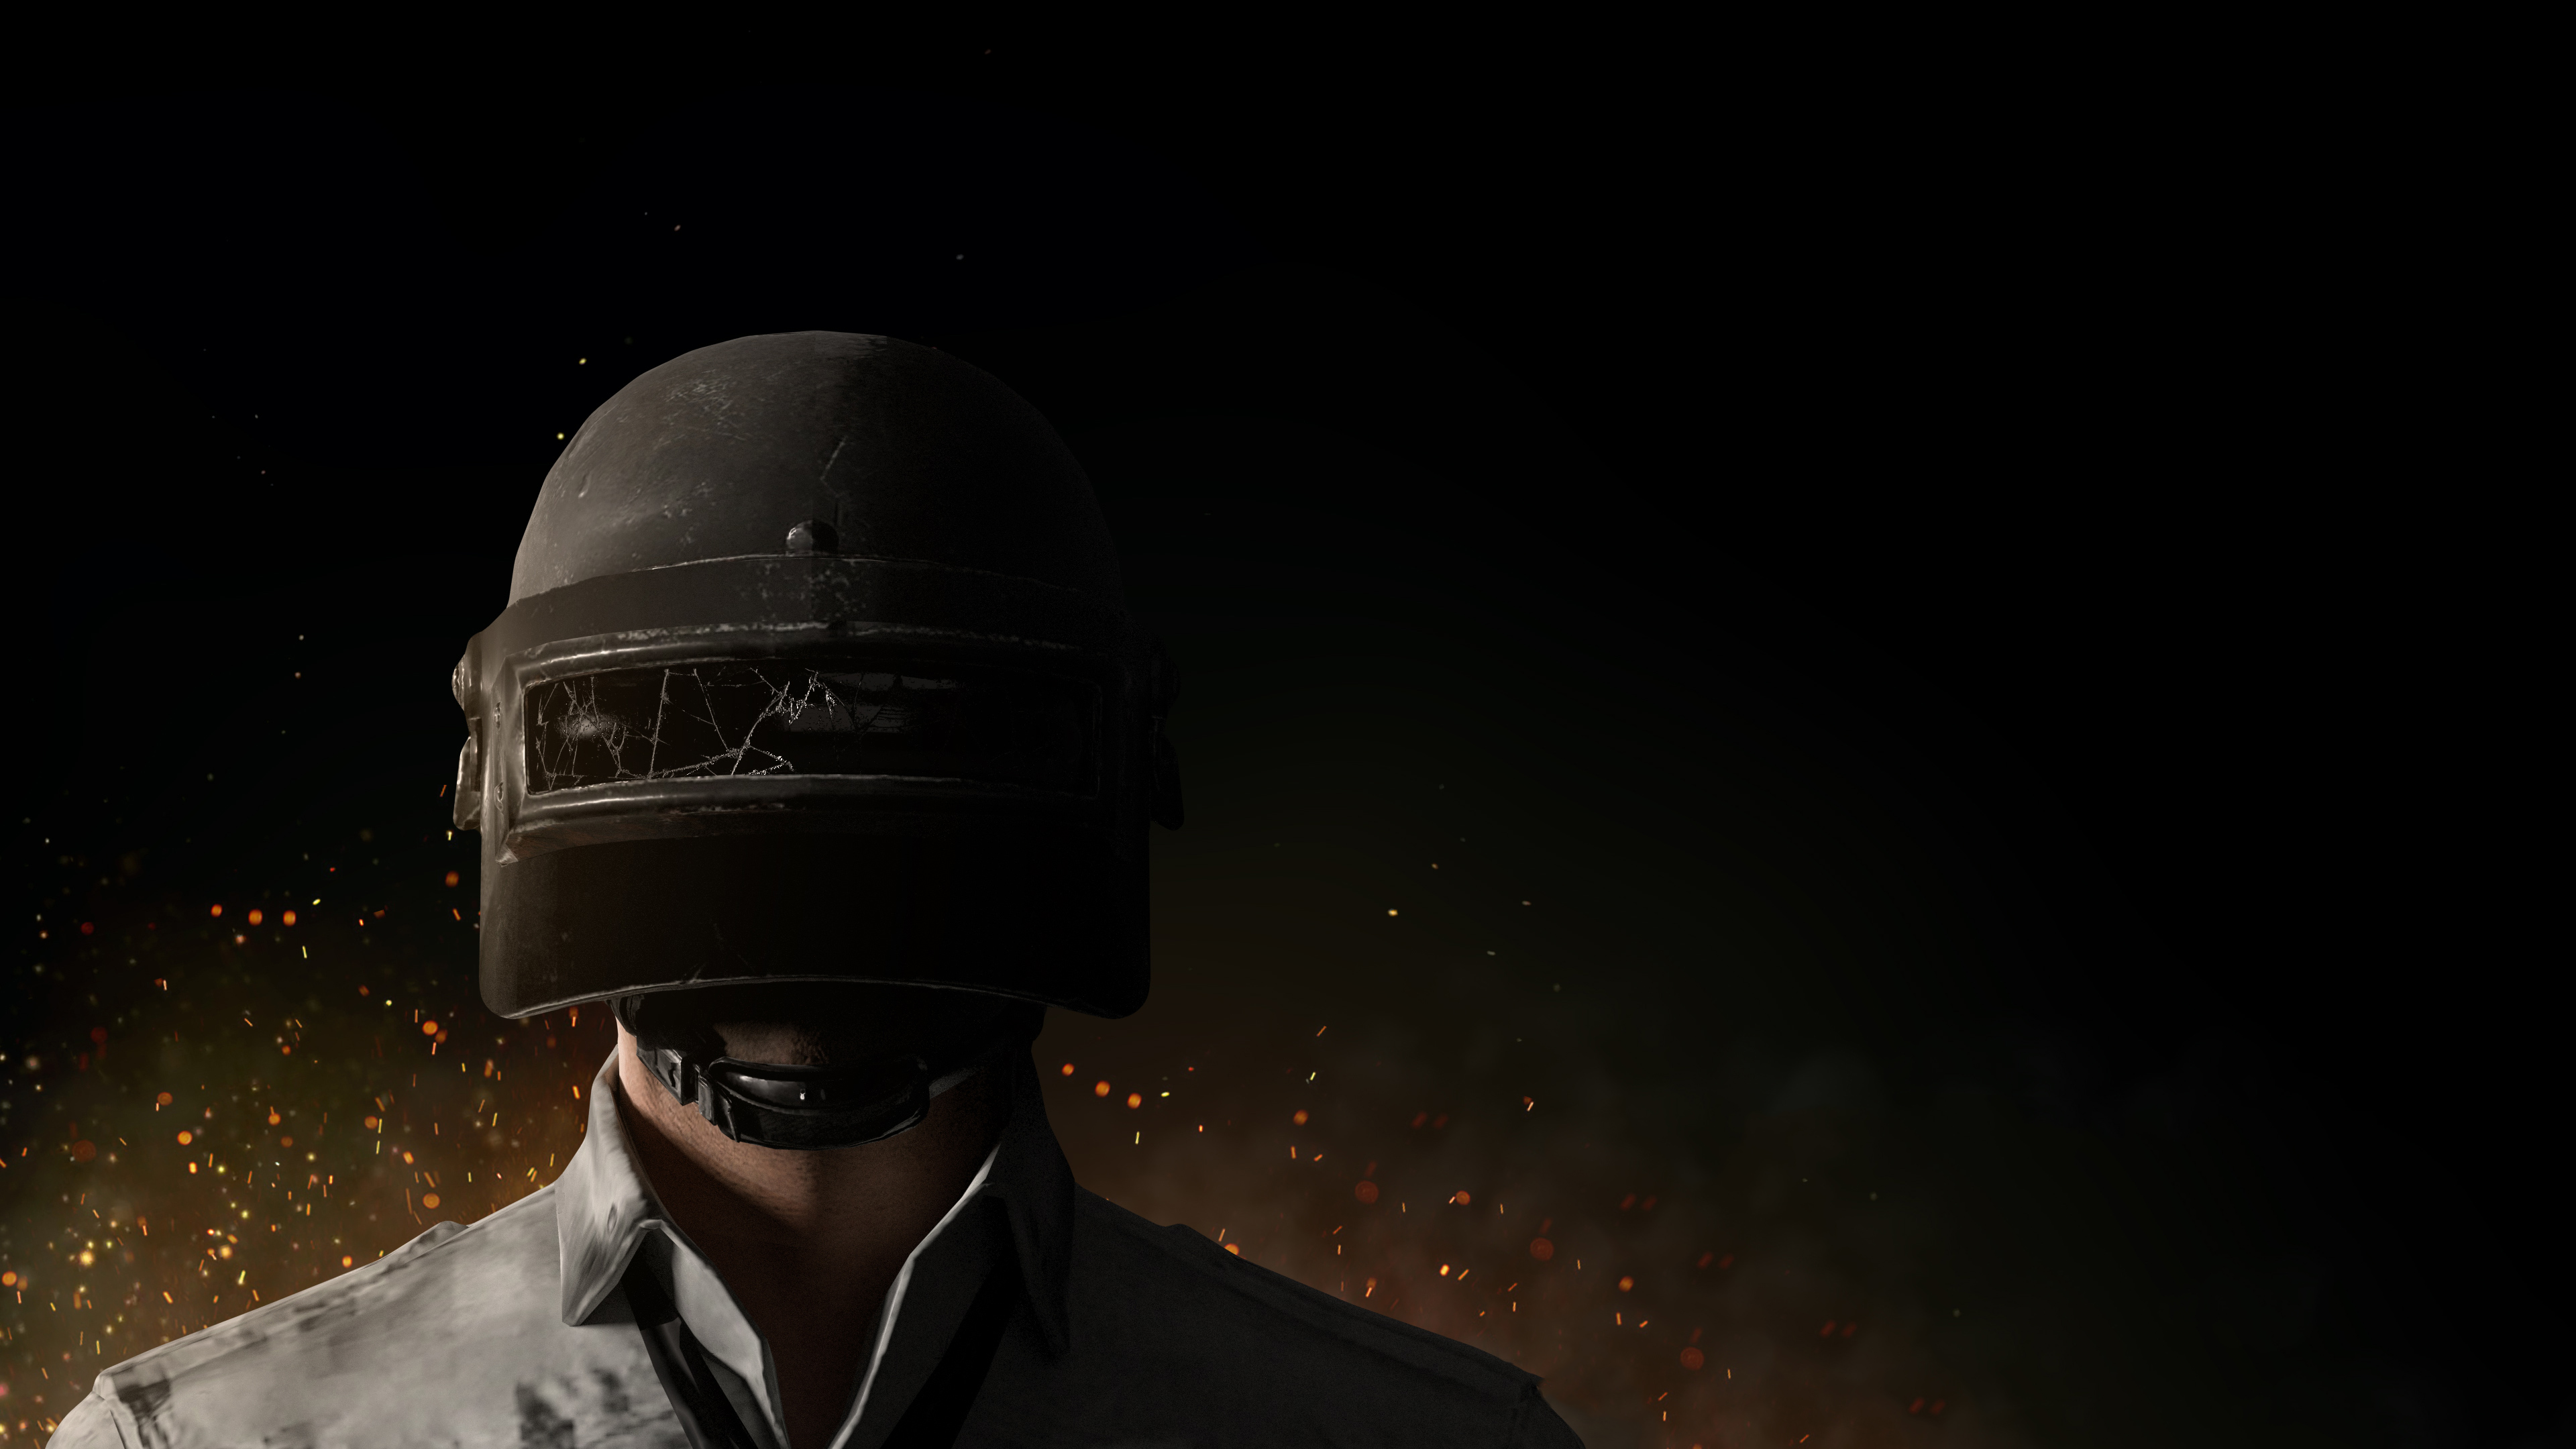 PUBG Helmet Guy 4k, HD Games, 4k Wallpapers, Images